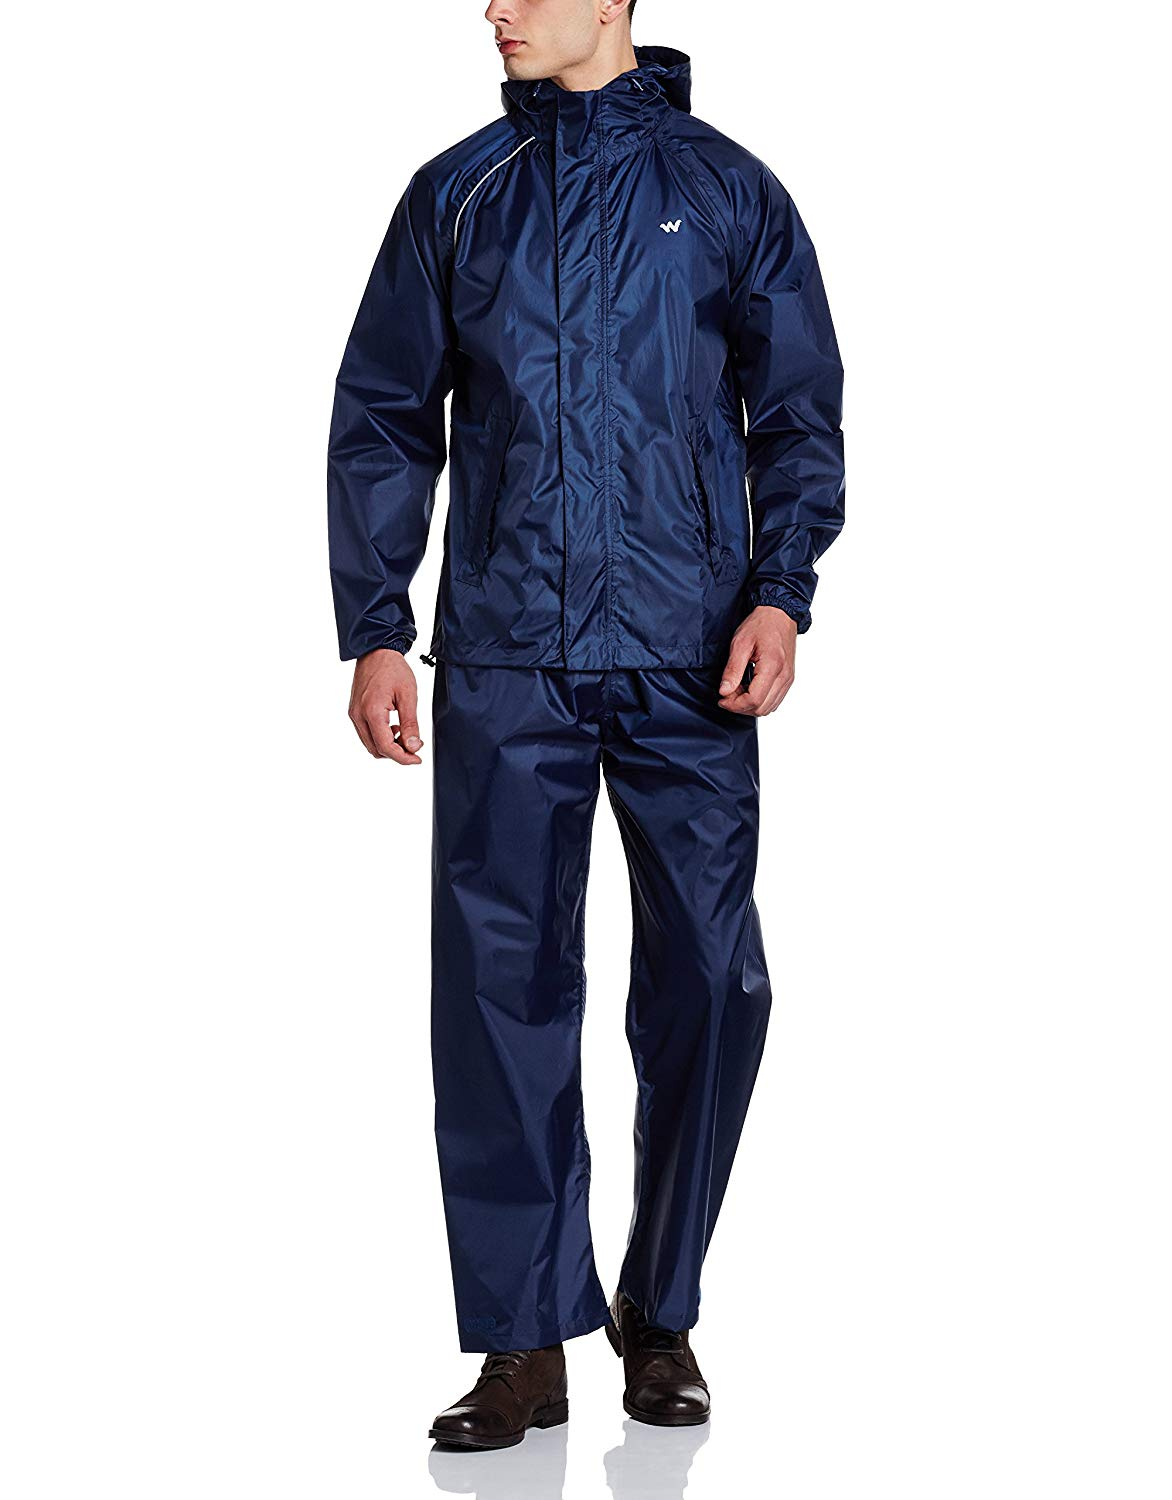 Wildcraft Rain cheater Suit Navy